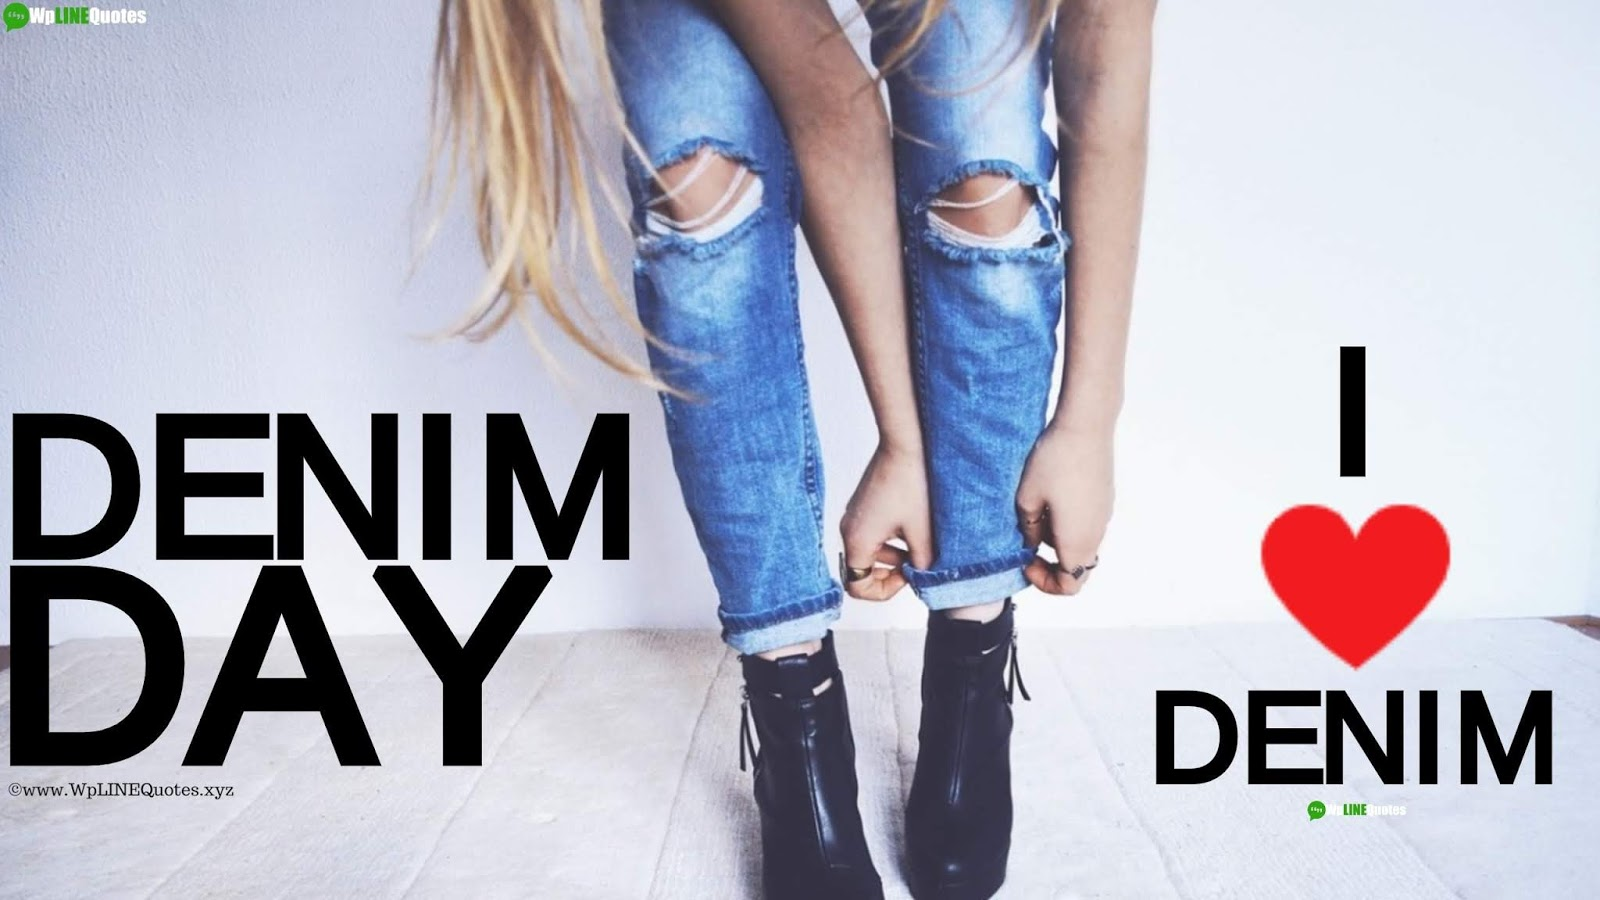 Denim Day Quotes, Meaning, History, Facts, Images, Photos, Pictures, Wallpaper